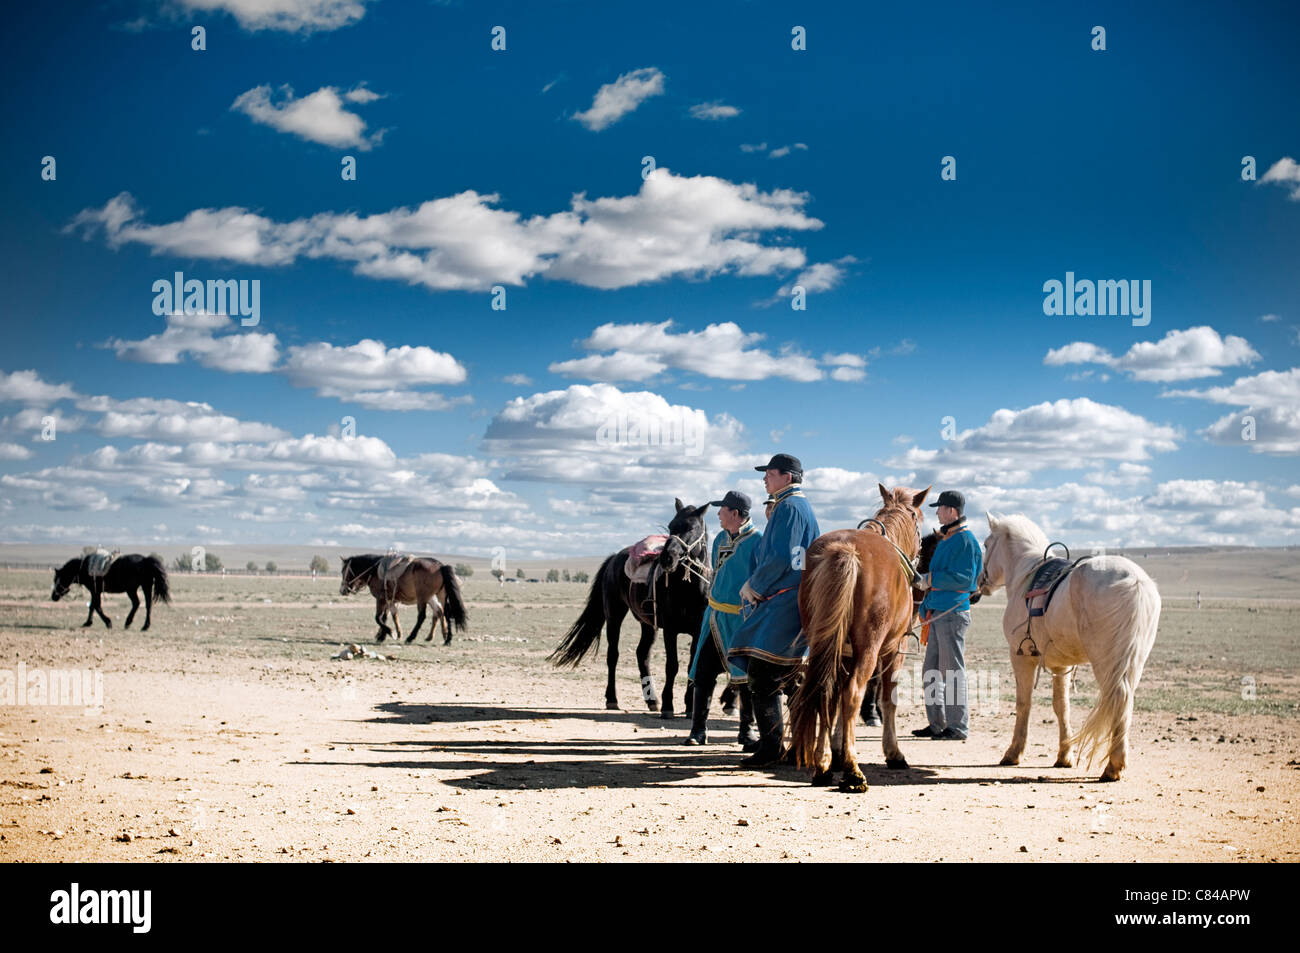 Mongolian tribe in Inner Mongolia Peoples Republic of China. The people still live a traditional life breeding horses. - Stock Image